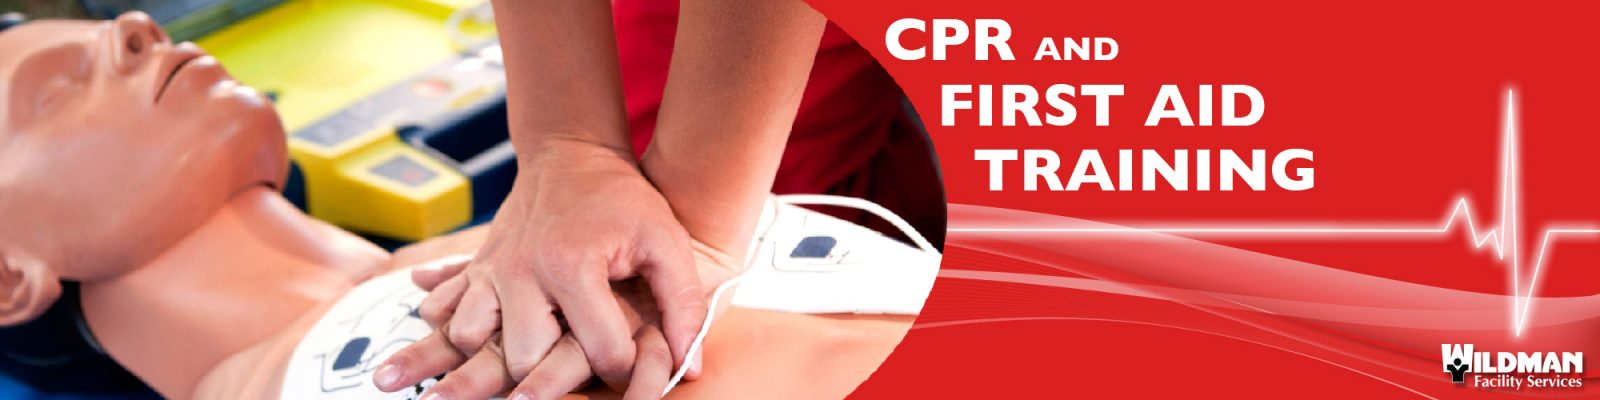 cpr-first-aid-training-fas-banner